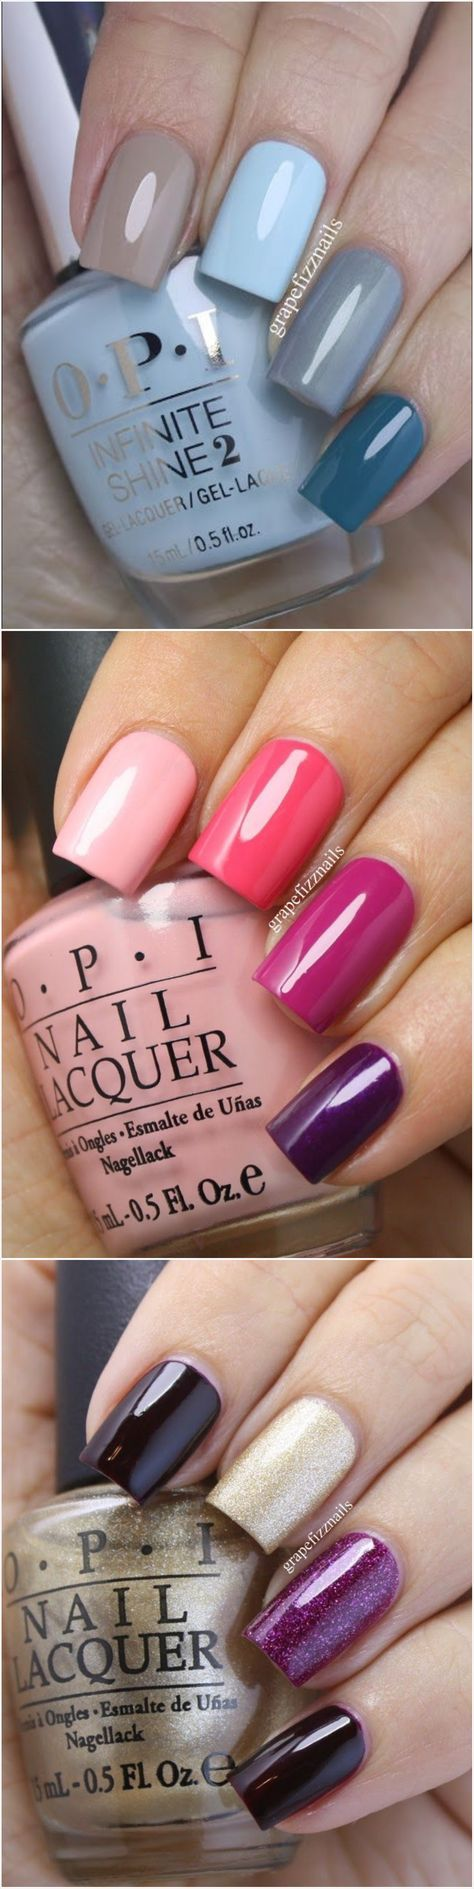 101 Trending Nail Art Ideas Opi Nails Opi And Swatch